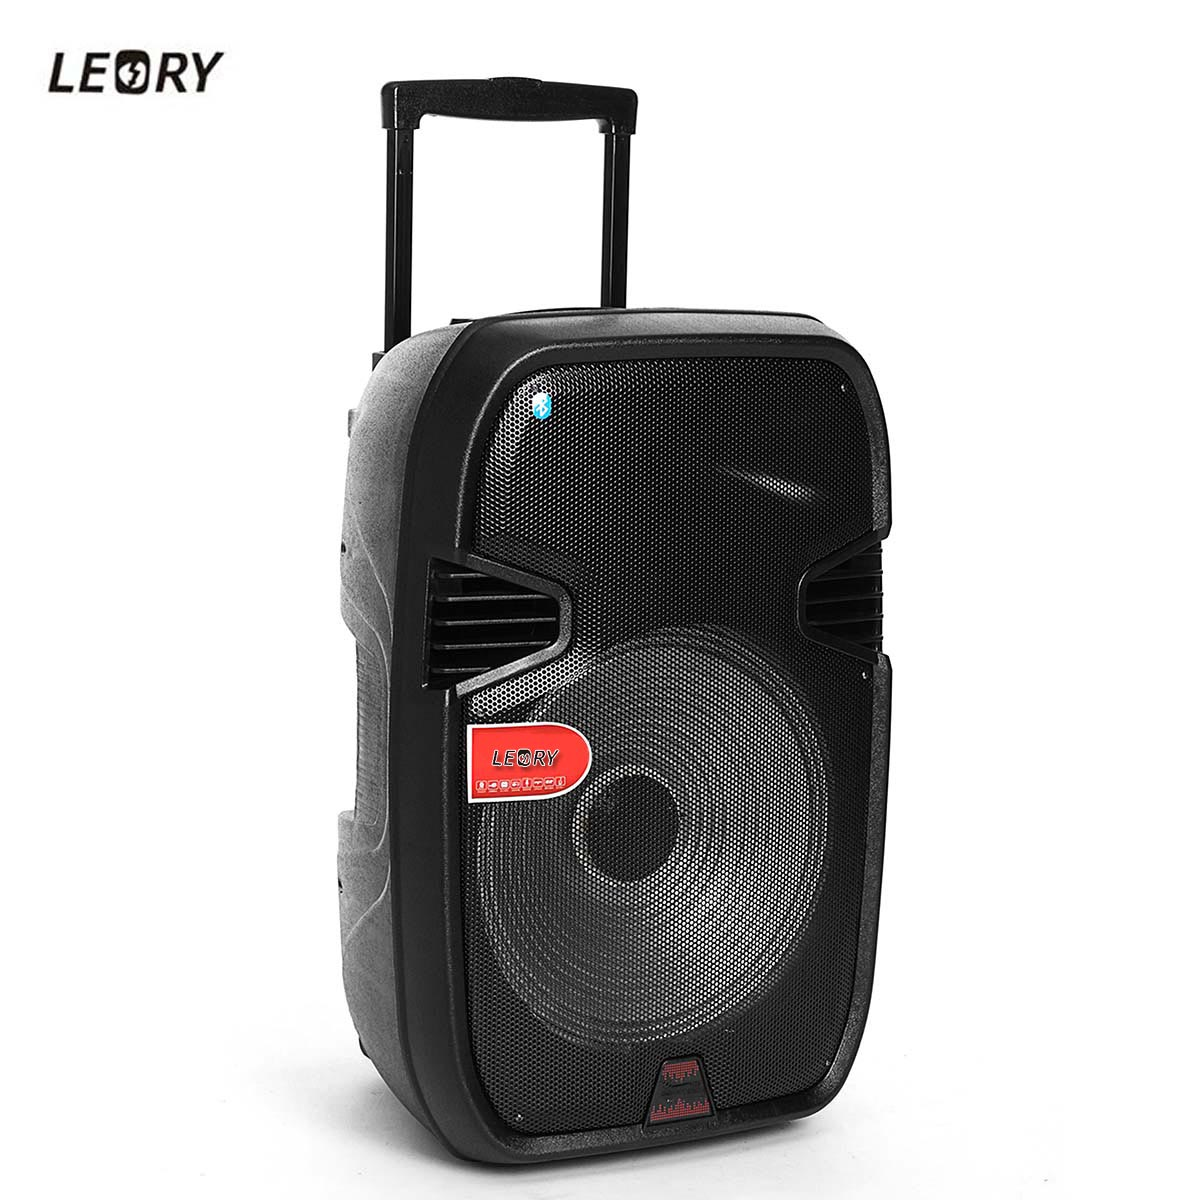 LEORY 15 Inch Wireless Bluetooth Speaker Portalbe Karaoke Speaker System LED Super Bass Stereo Loudspeaker Home Audio Outdoor(China (Mainland))